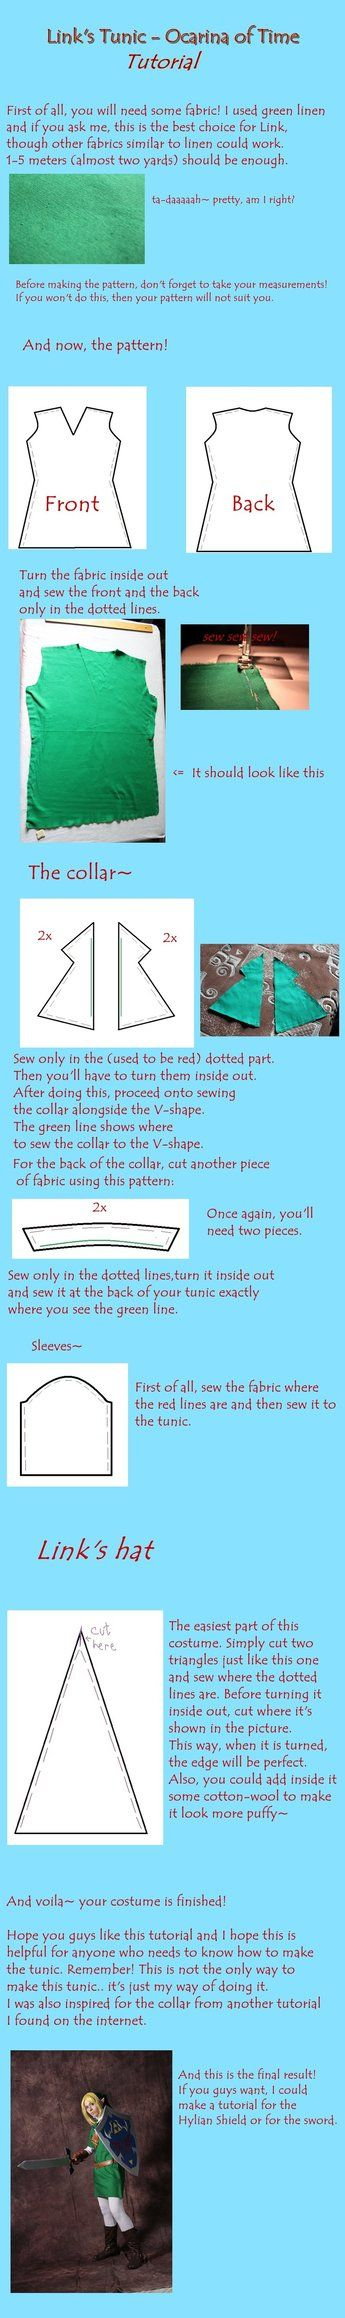 Link tunic tutorial - Ocarina of Time by *mitsuhidezura on deviantART